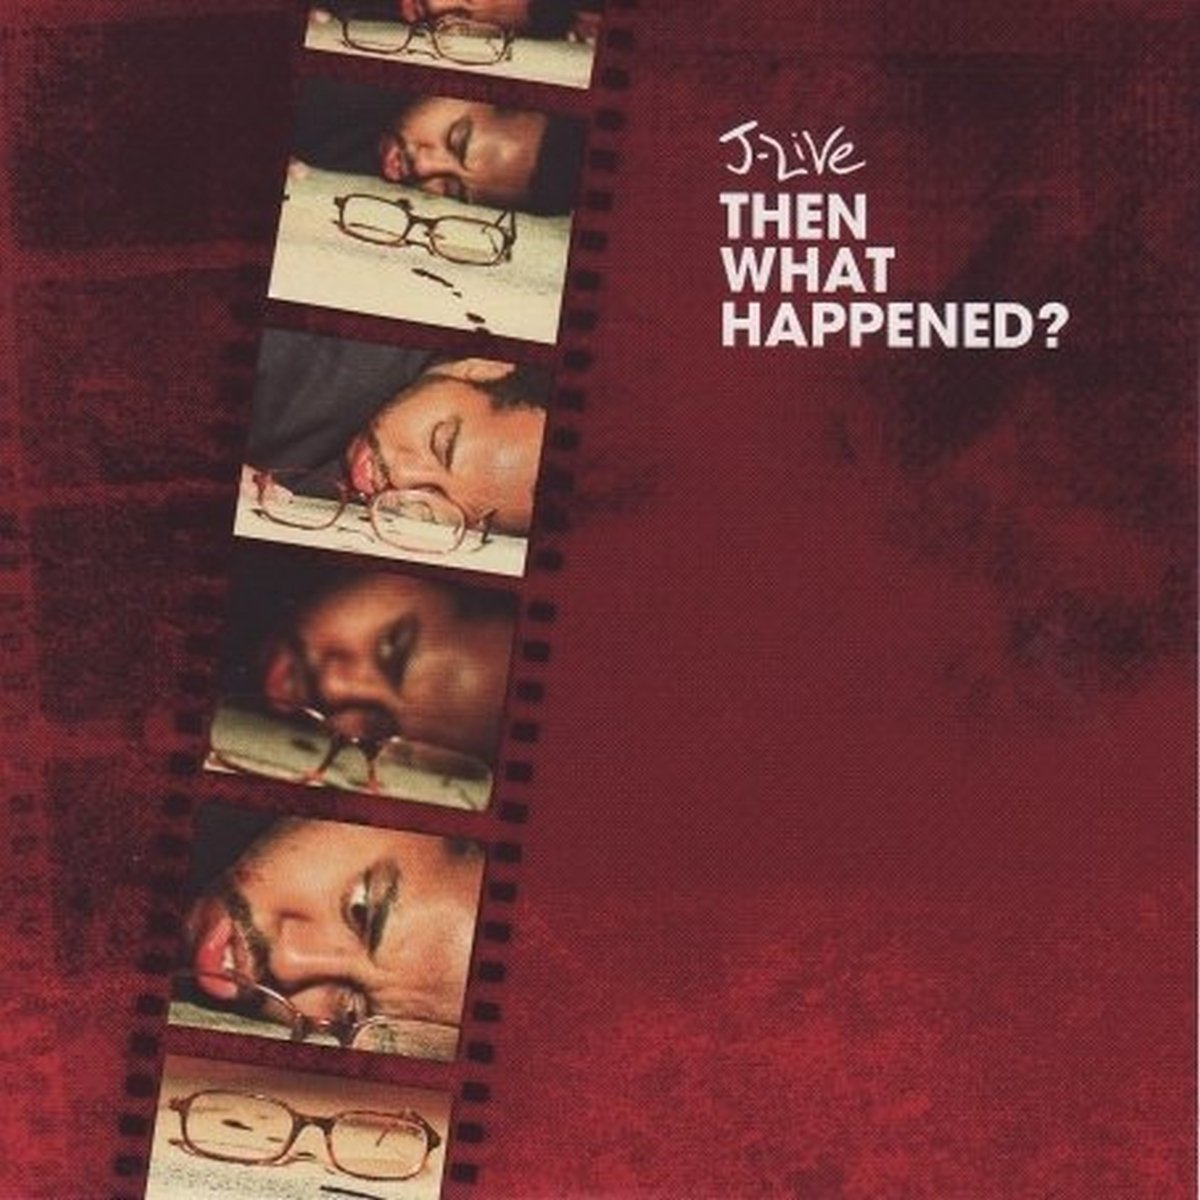 Then What Happened? by Bbe